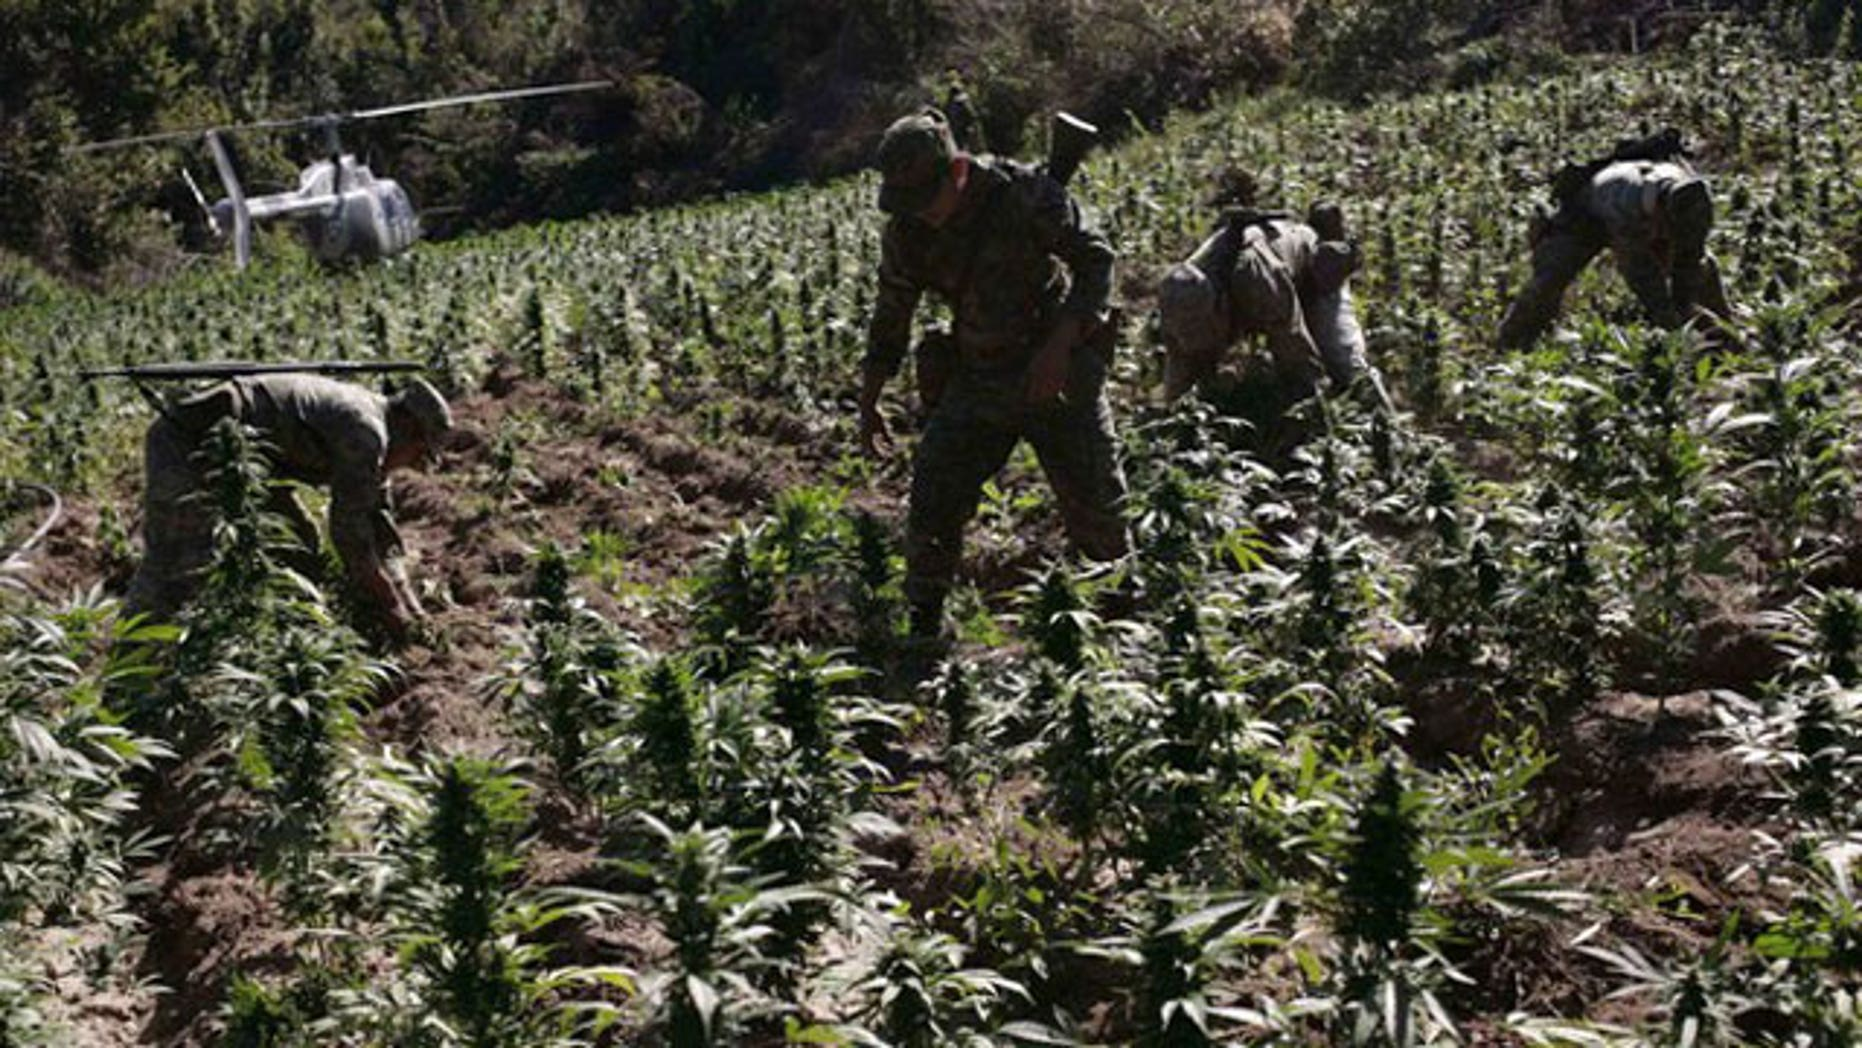 December 7, 2011: Soldiers destroy marijuana plants during a military operation at Sierra de Culiacan in state of Sinaloa.